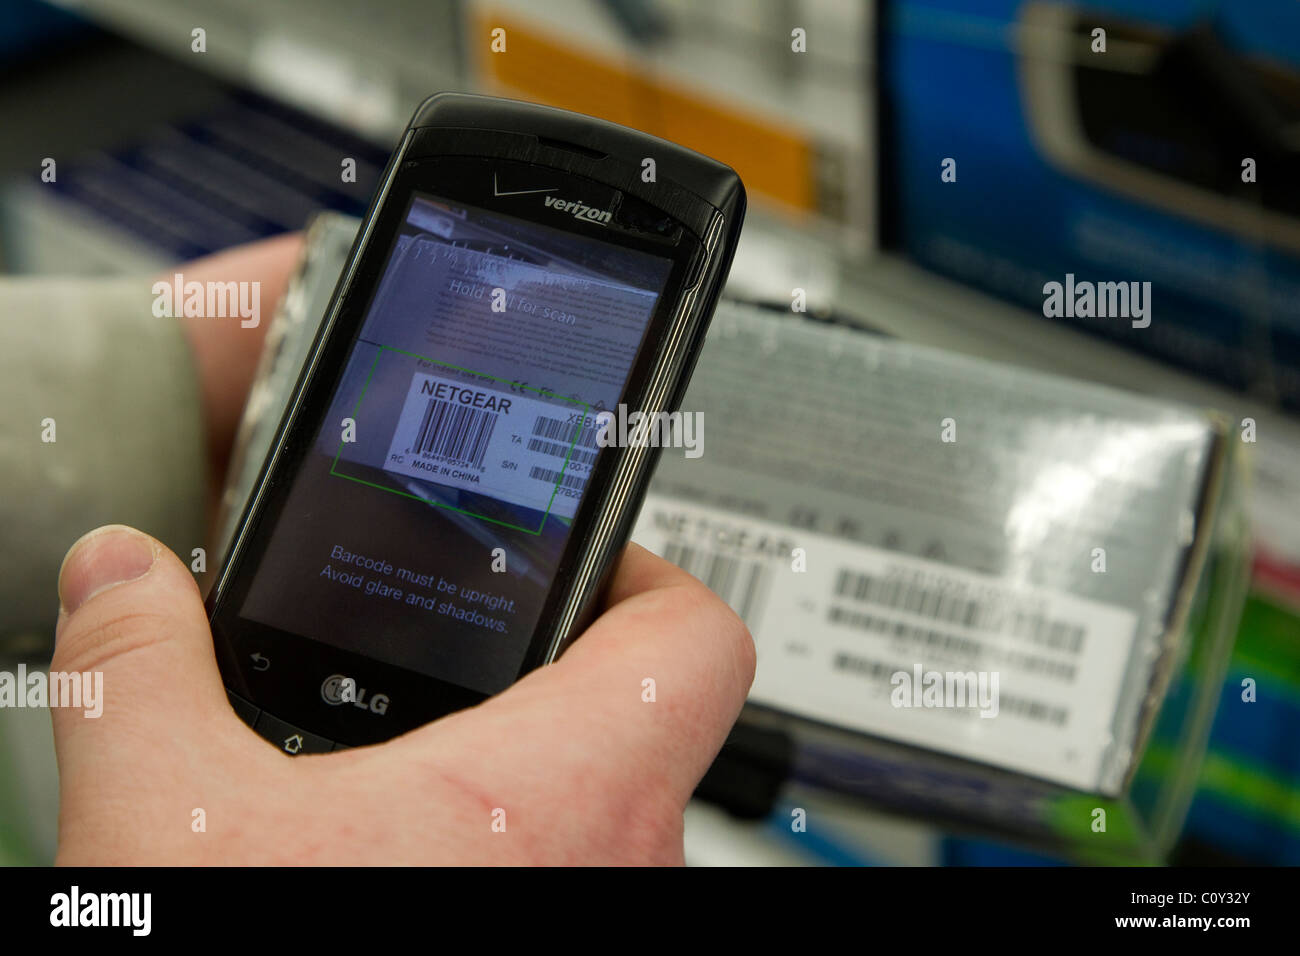 Upc Scan Stock Photos & Upc Scan Stock Images - Alamy